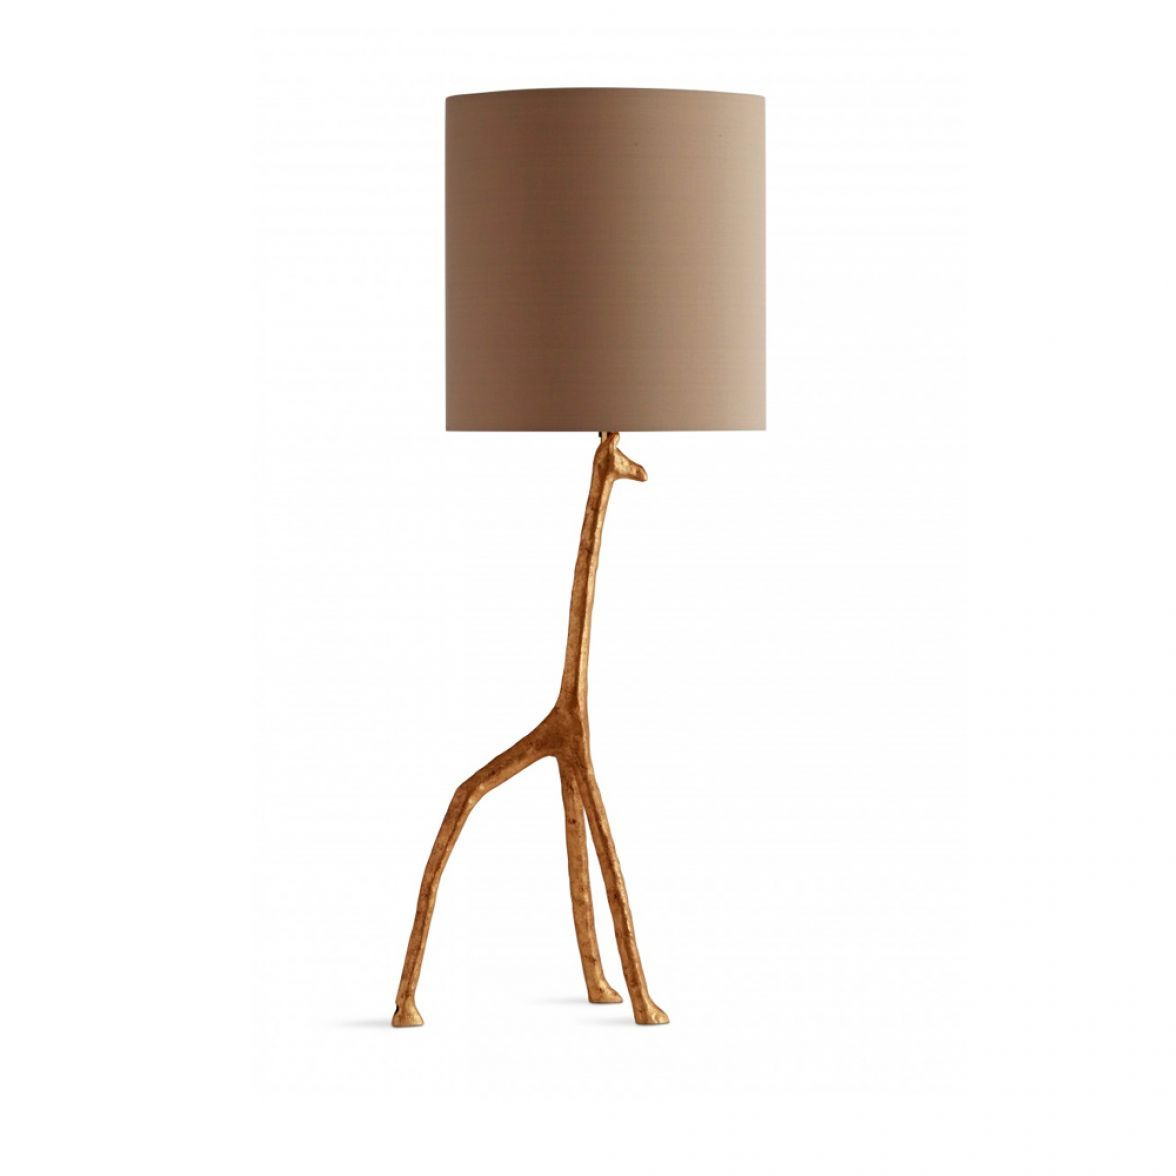 Giraffee lamp фото цена